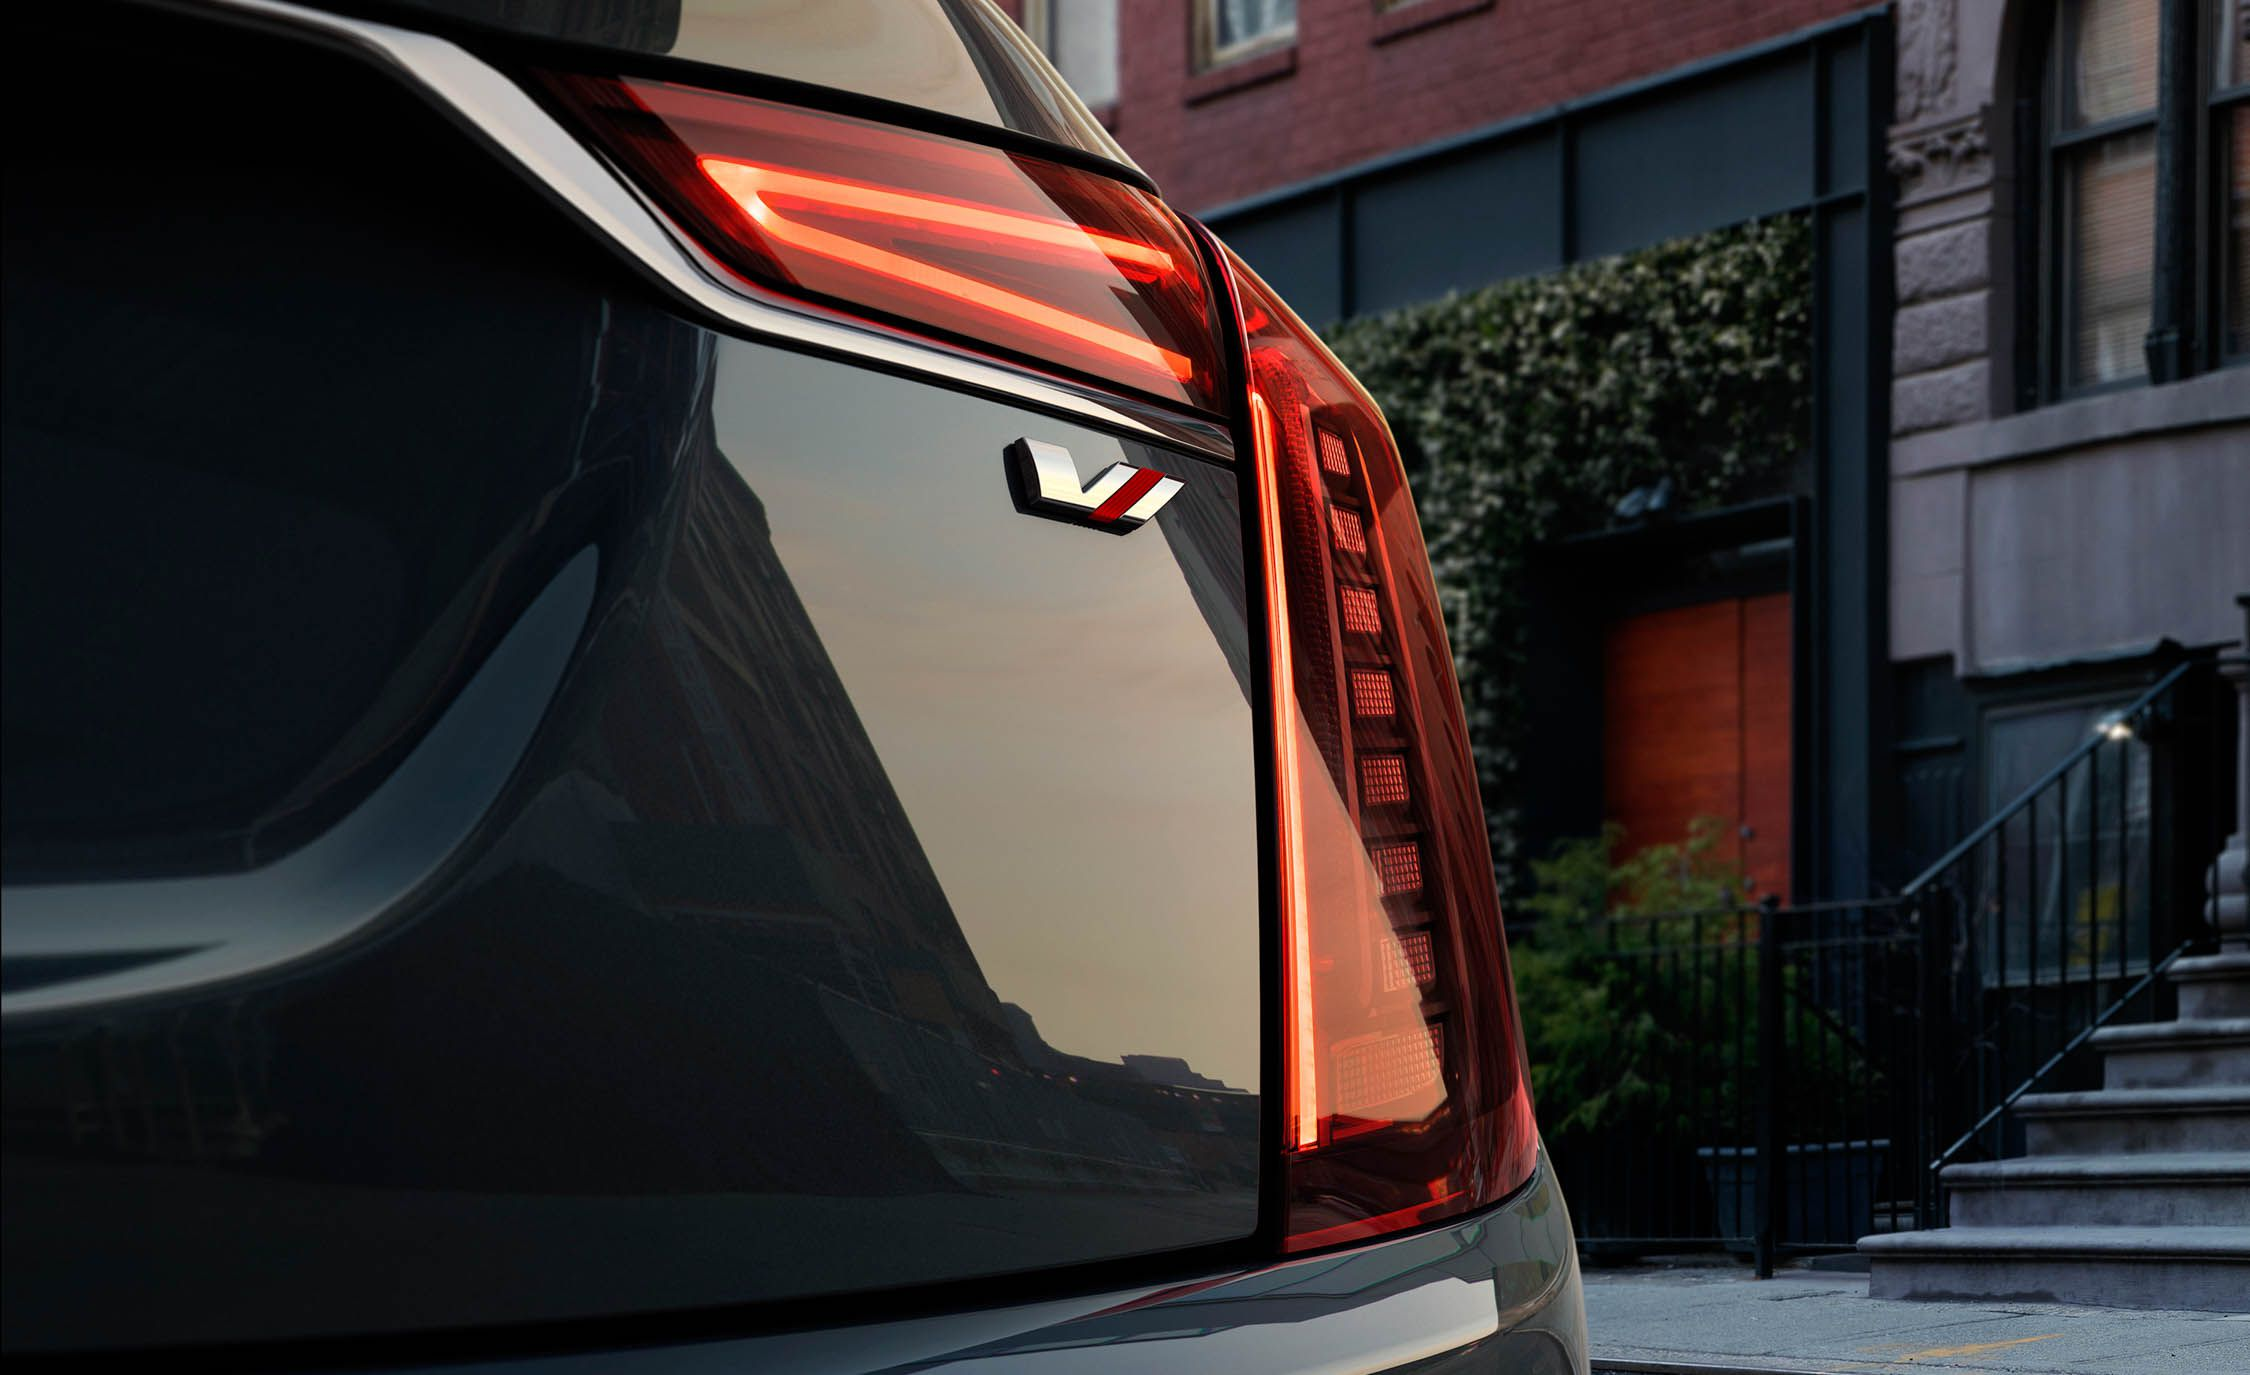 2019 Cadillac CT6 V-Sport Tail Light Wallpapers (8)